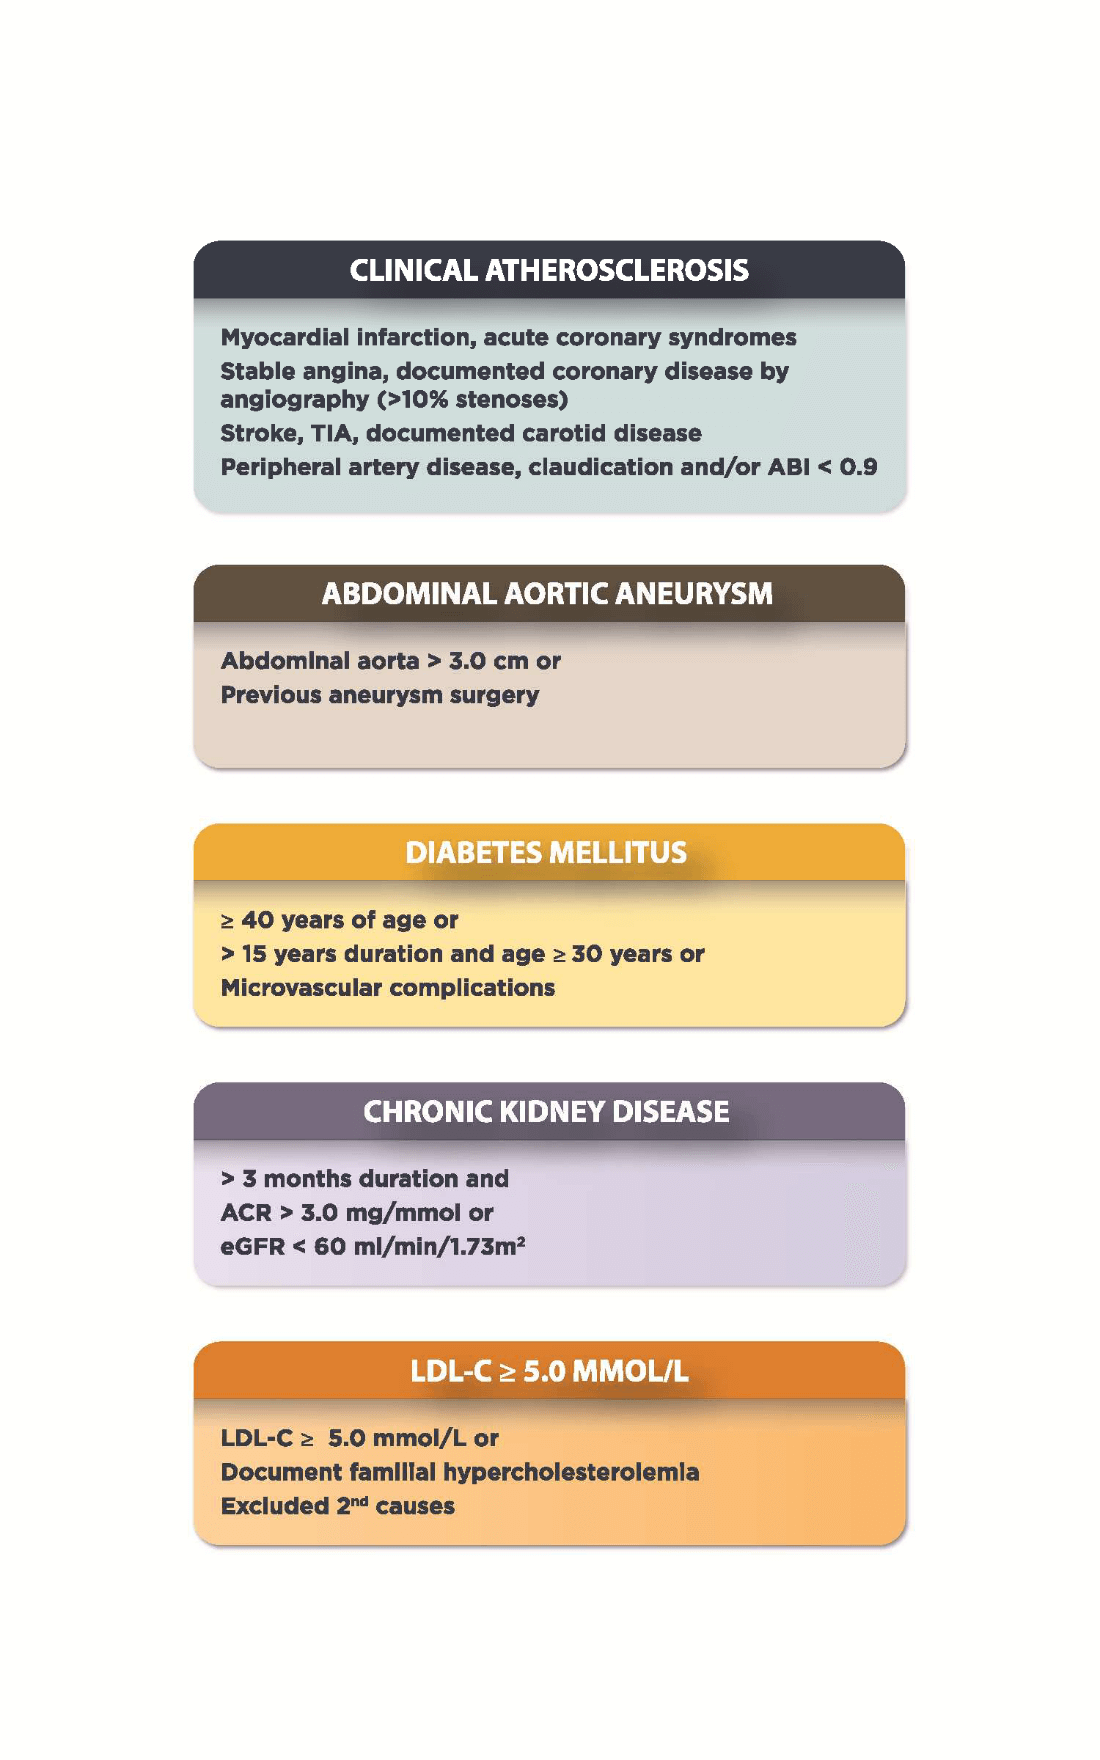 Caption: Conditions for which pharmacotherapy with statins is indicated. ABI, ankle-brachial index; ACR, albumin:creatinine ratio; eGFR, estimated glomerular filtration rate; LDL-C, low-density lipoprotein cholesterol; TIA, transient ischemic attack.